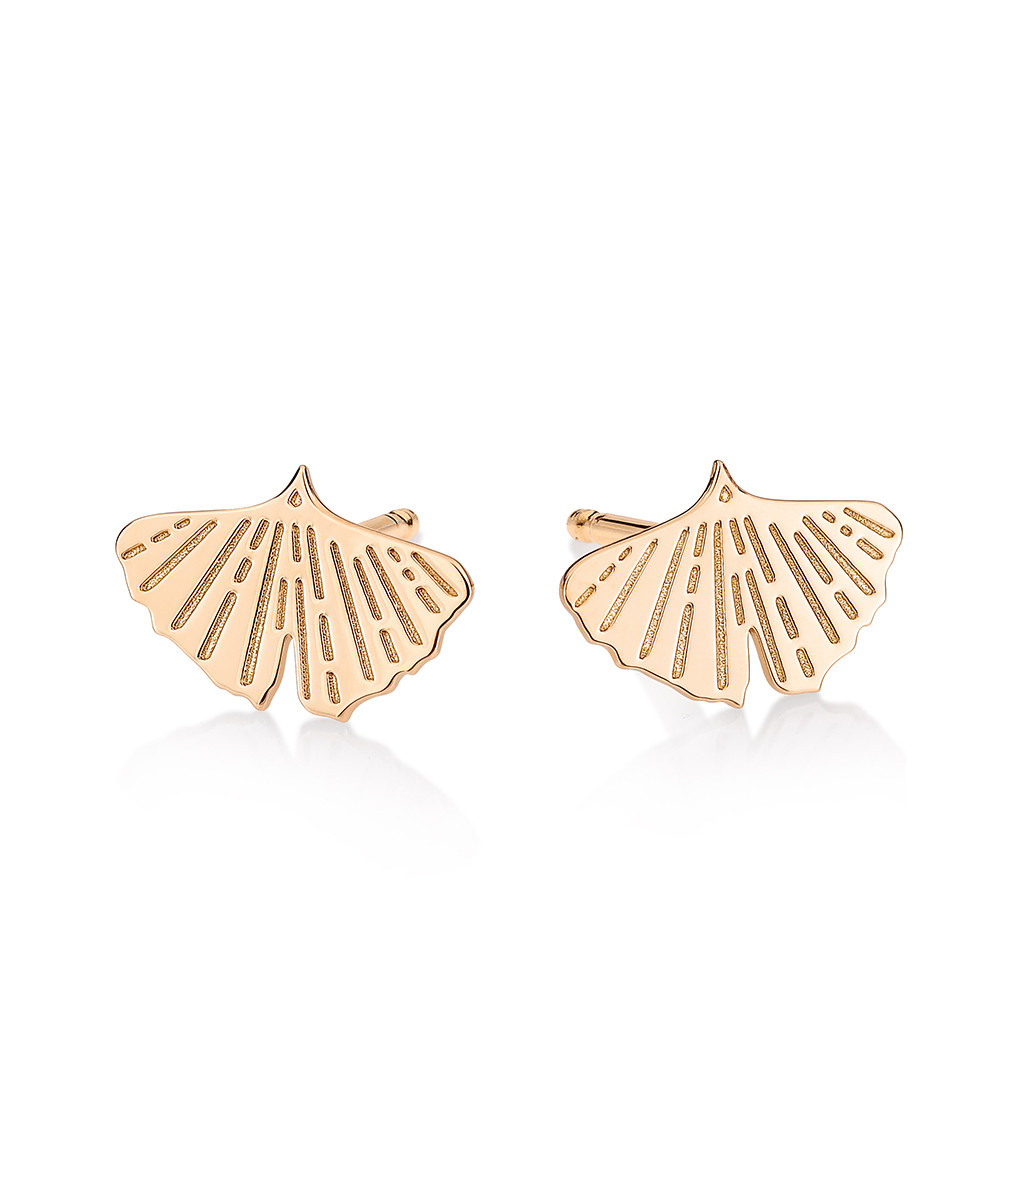 GINETTE_NY - Boucles d'oreilles Gingko Or Rose